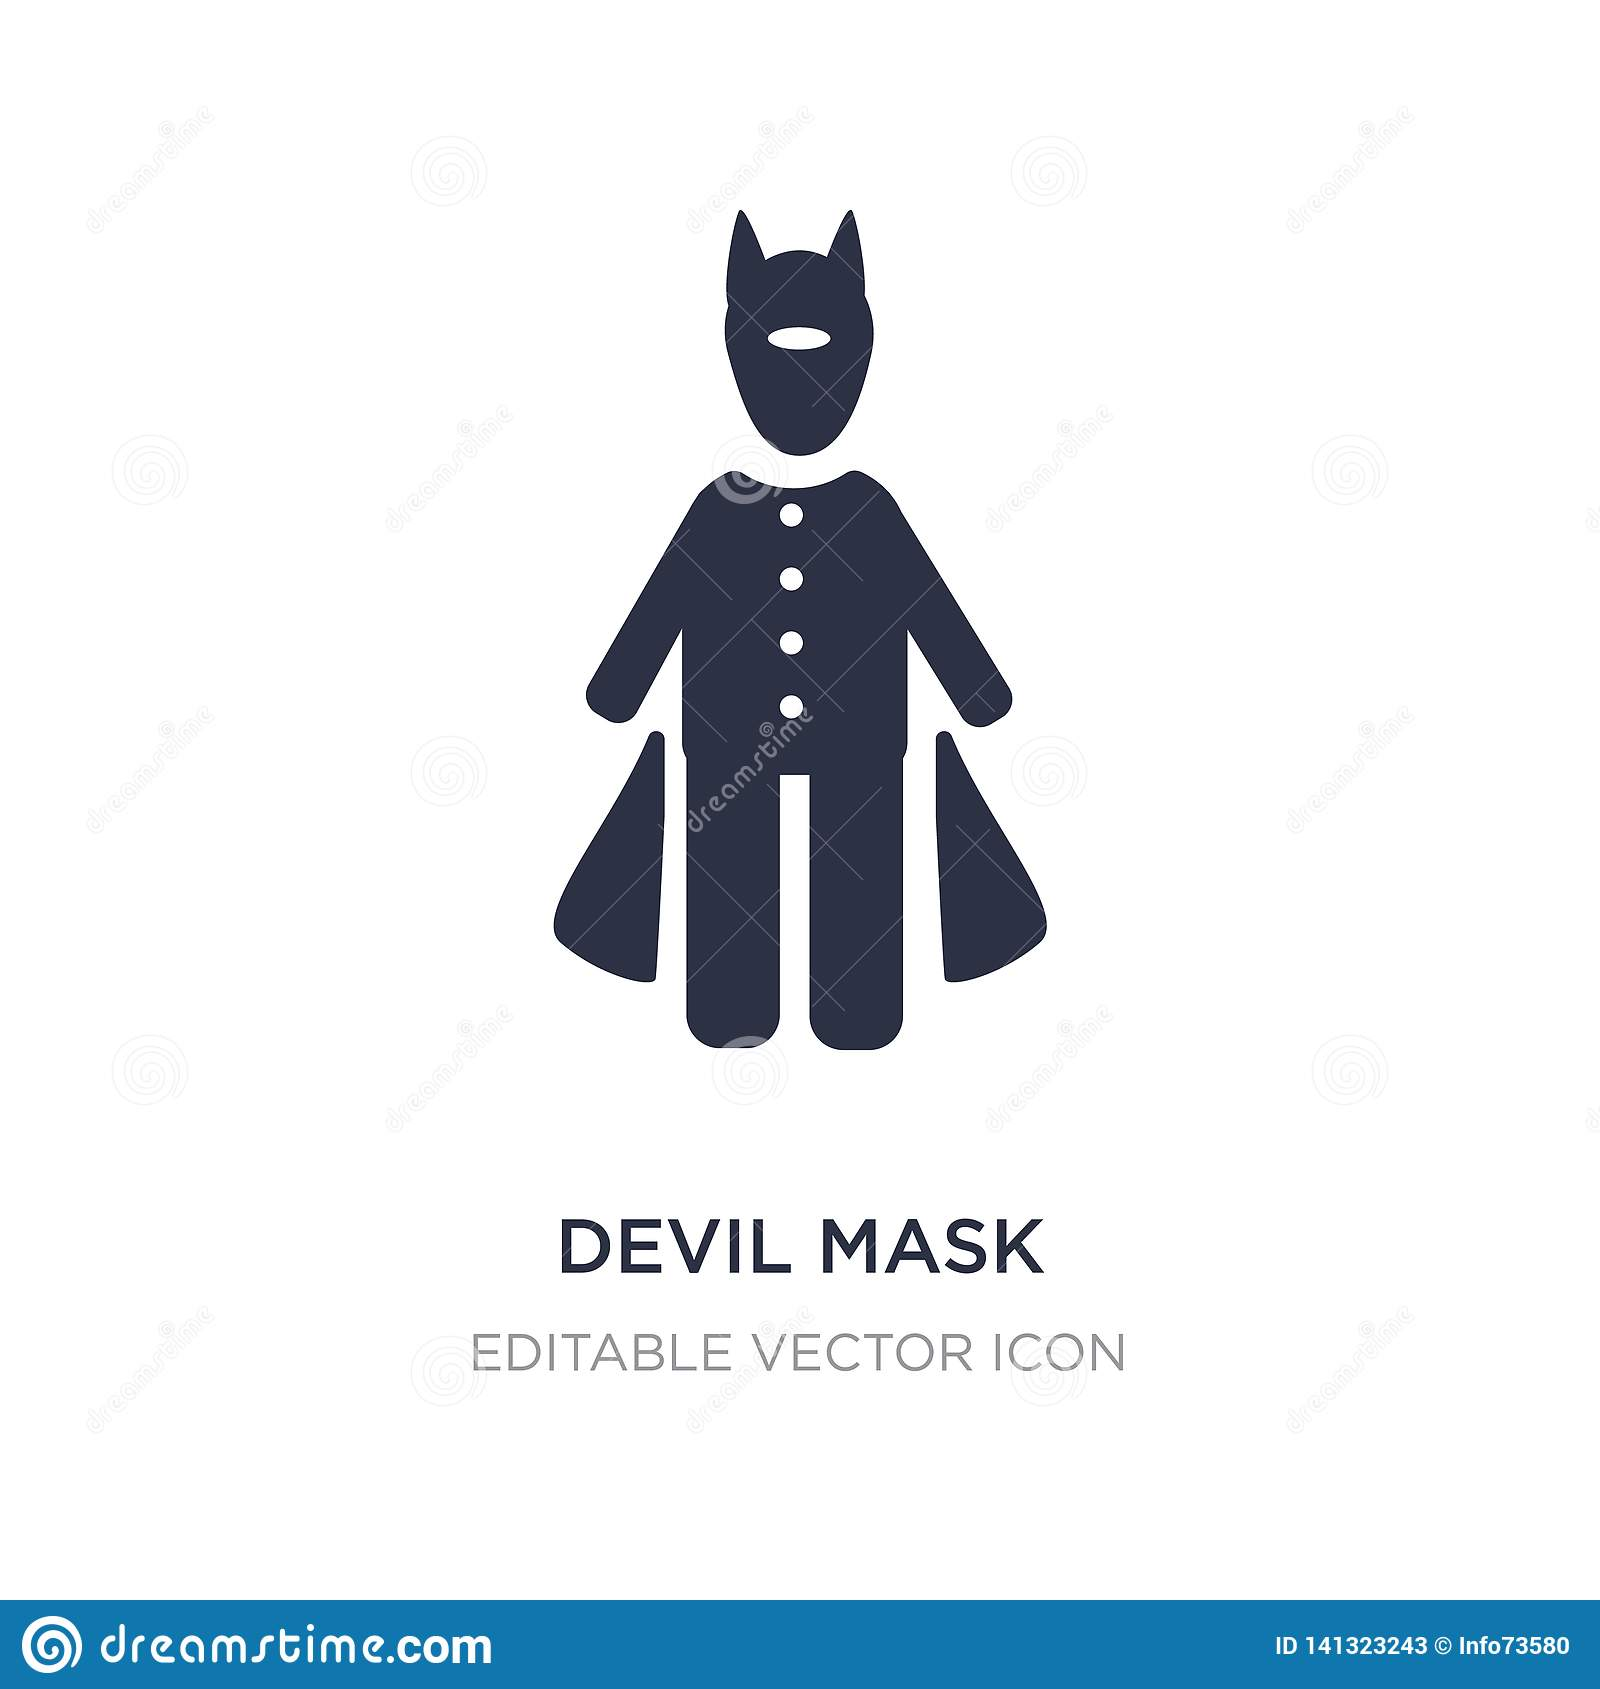 devil mask icon on white background. Simple element illustration from People concept